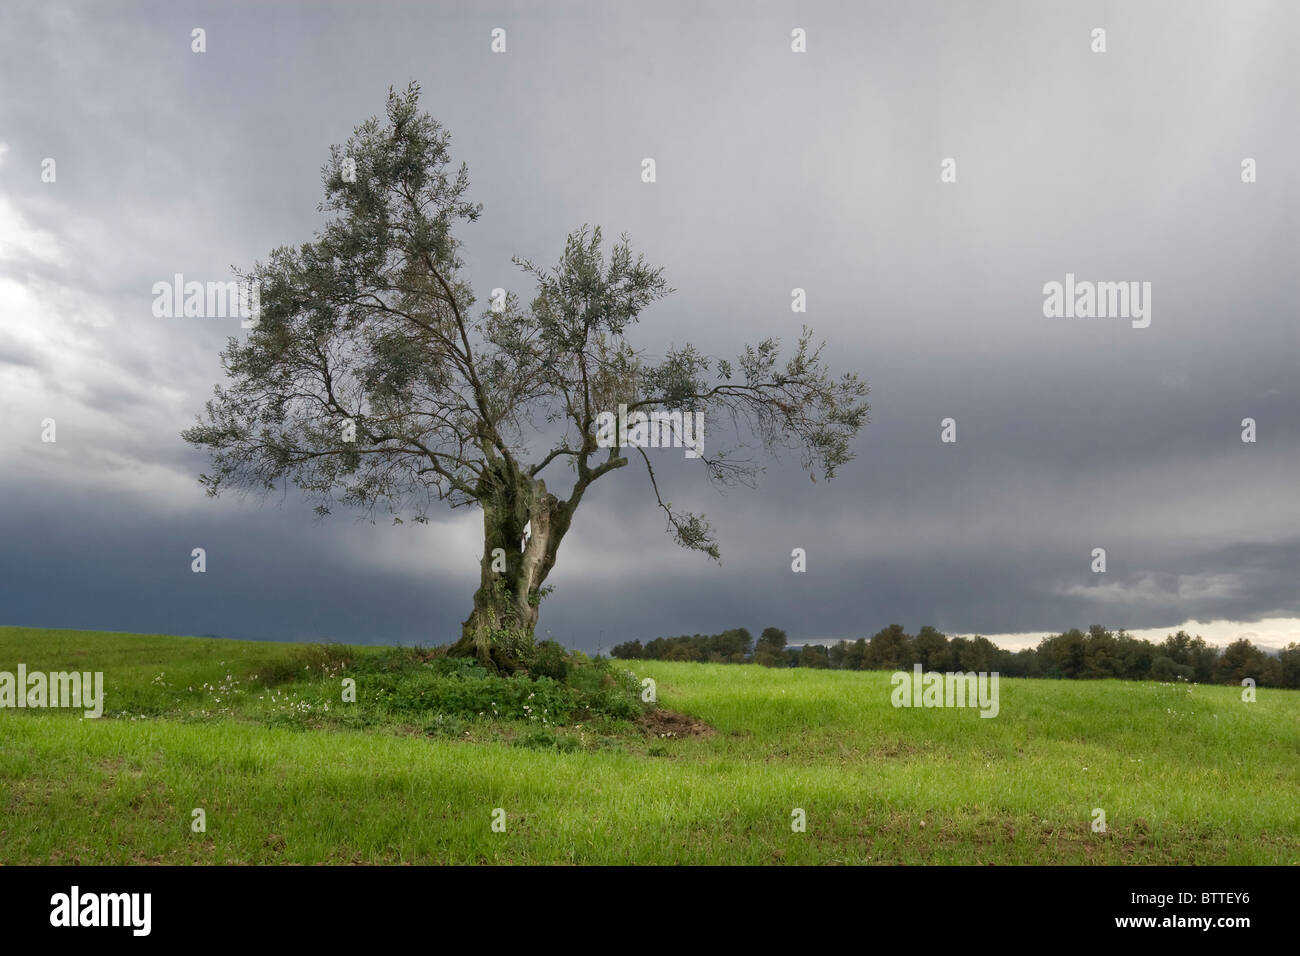 Lonely olive tree - Stock Image